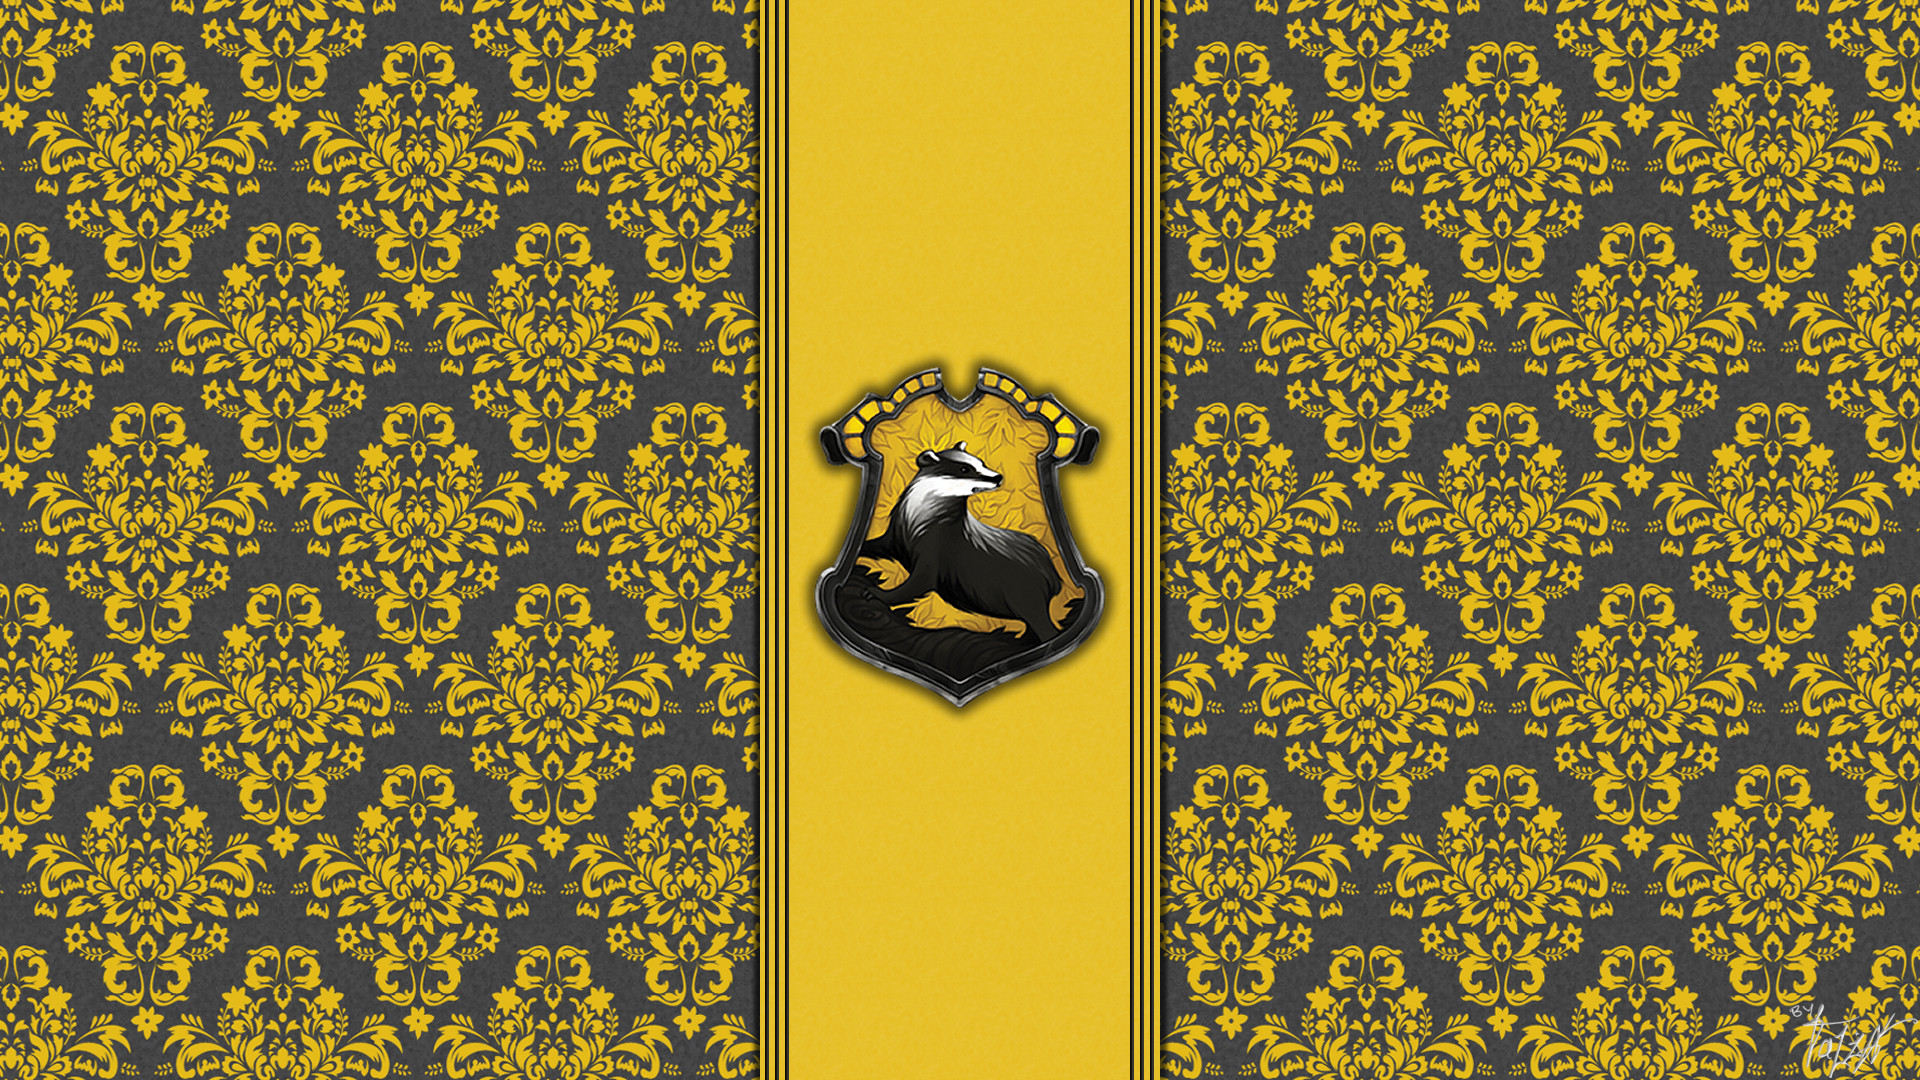 1920x1080 House hufflepuff wallpaper hogwarts paper art theladyavatar | Harry Potter  | Pinterest | Colors, Paper and Desktop wallpapers